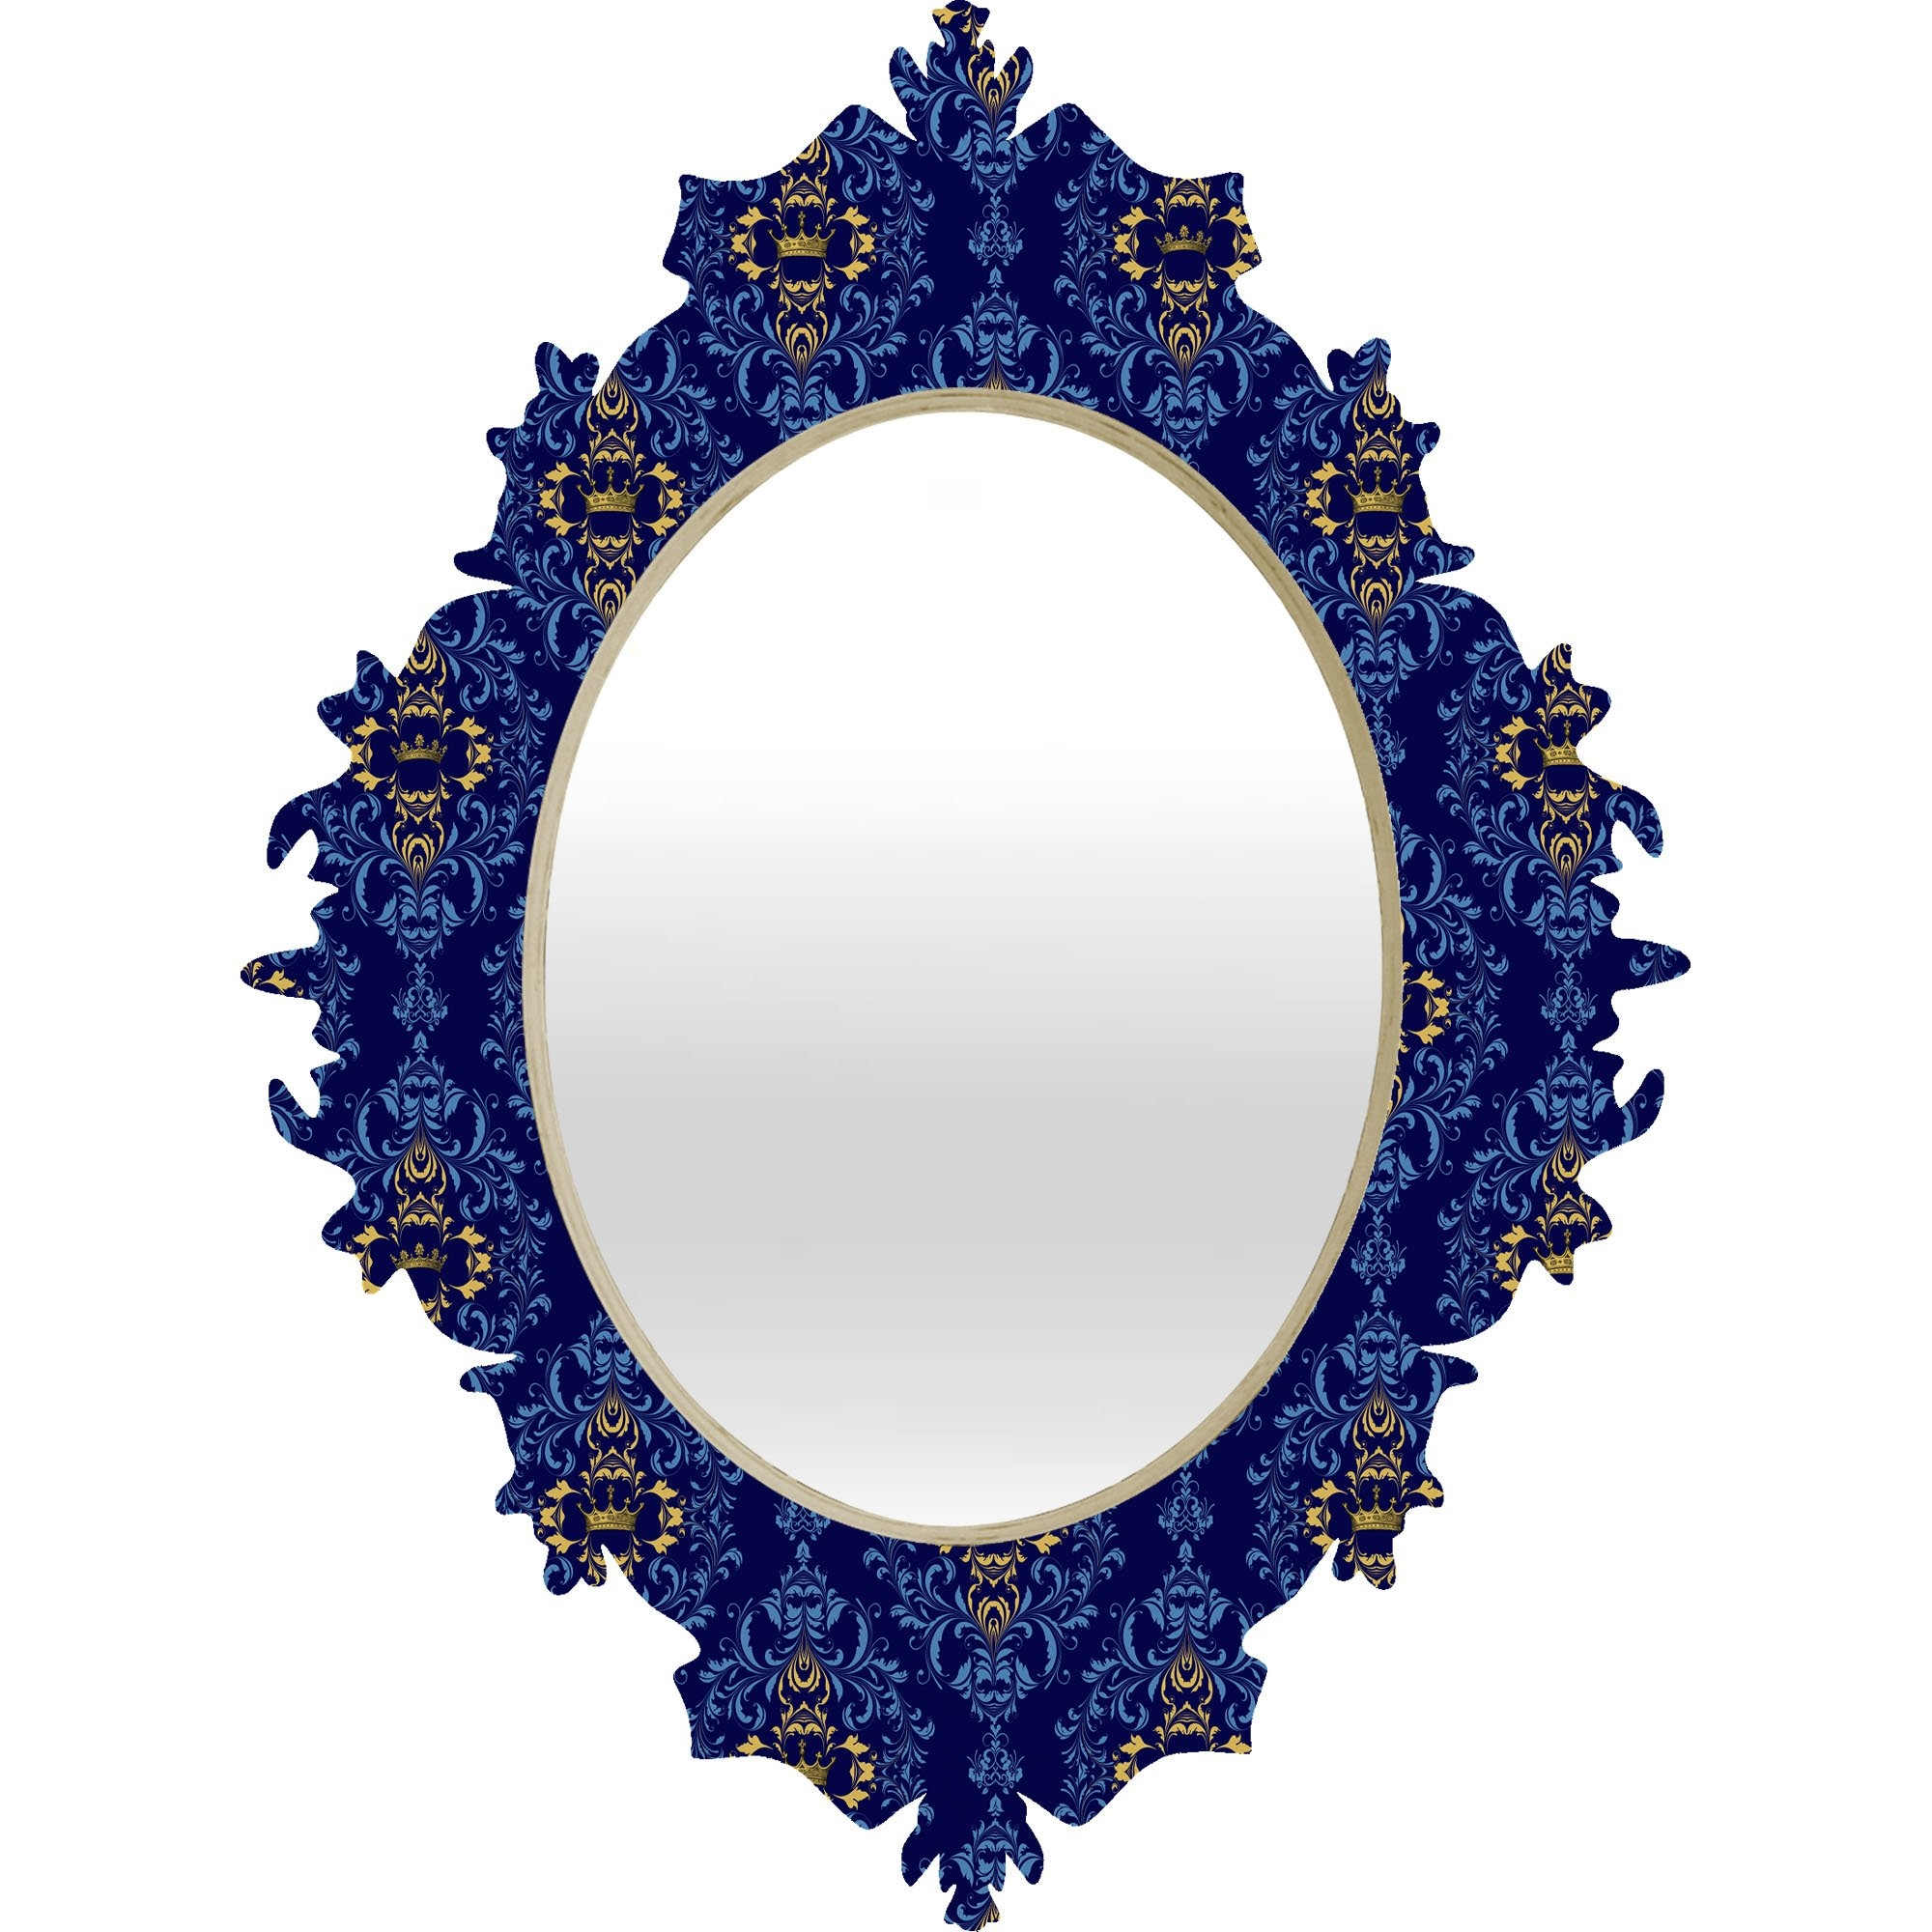 Deny Designs Belle13 Royal Damask Pattern Baroque Mirror Reviews In Baroque Mirrors (Image 7 of 15)